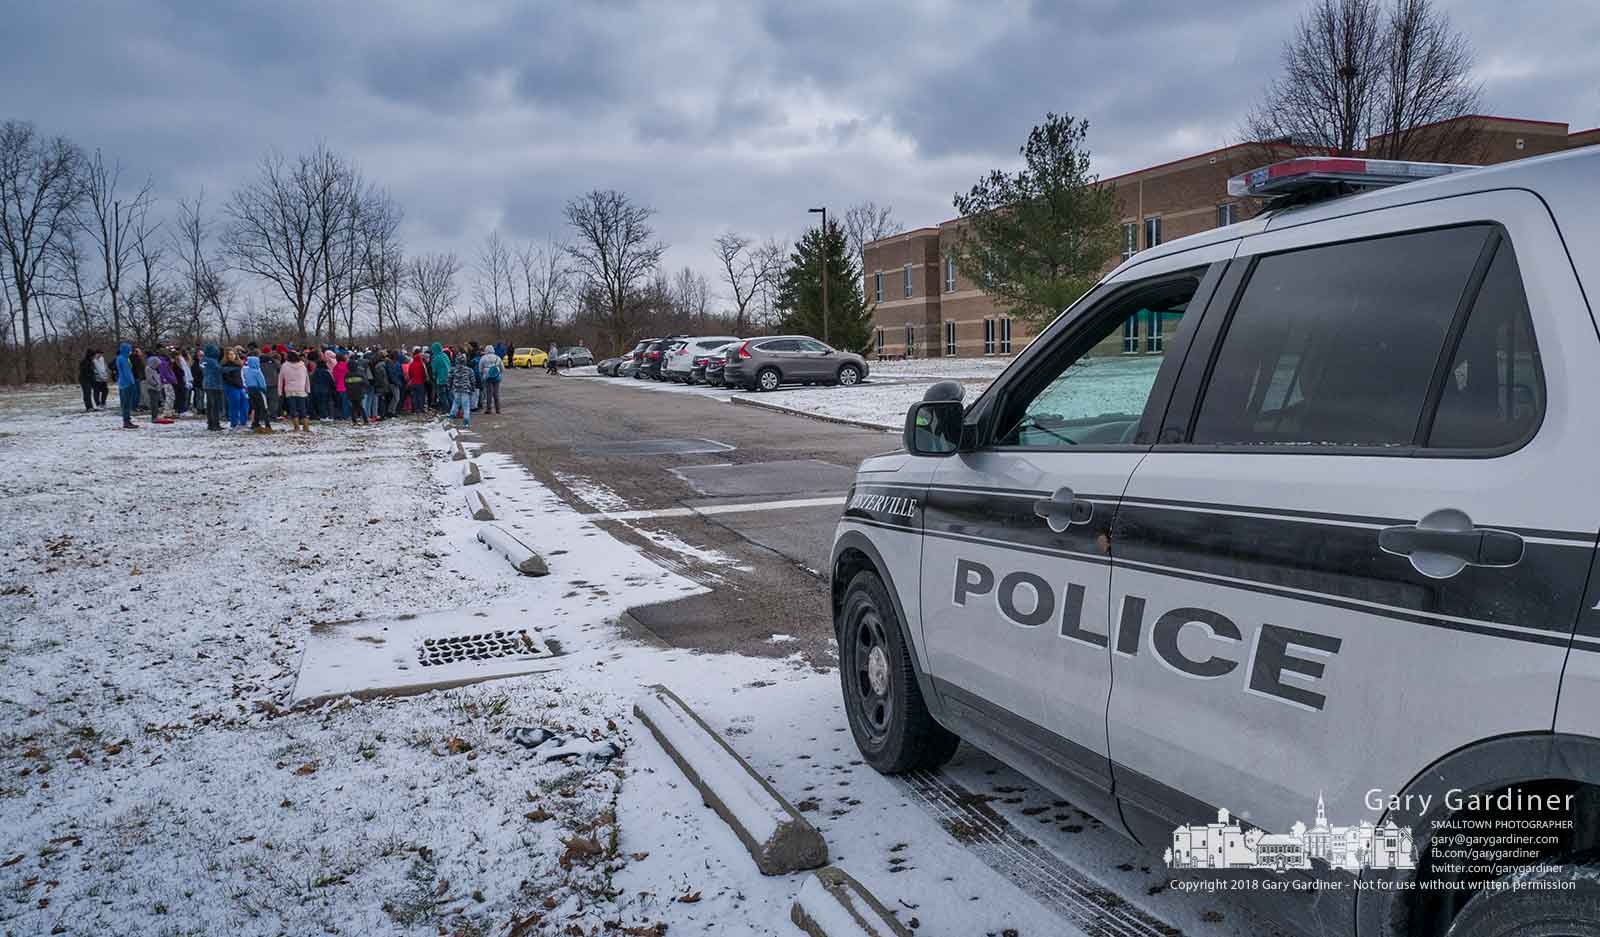 A Westerville police officer sits at the entrance to Heritage Middle School during a walkout by the students to express solidarity with a national movement to mark the one-month anniversary of the shooting incident at Marjory Stoneman Douglas High School in Parkland, Florida, where 17 people were killed and 14 others were injured. My Final Photo for March 14, 2018.